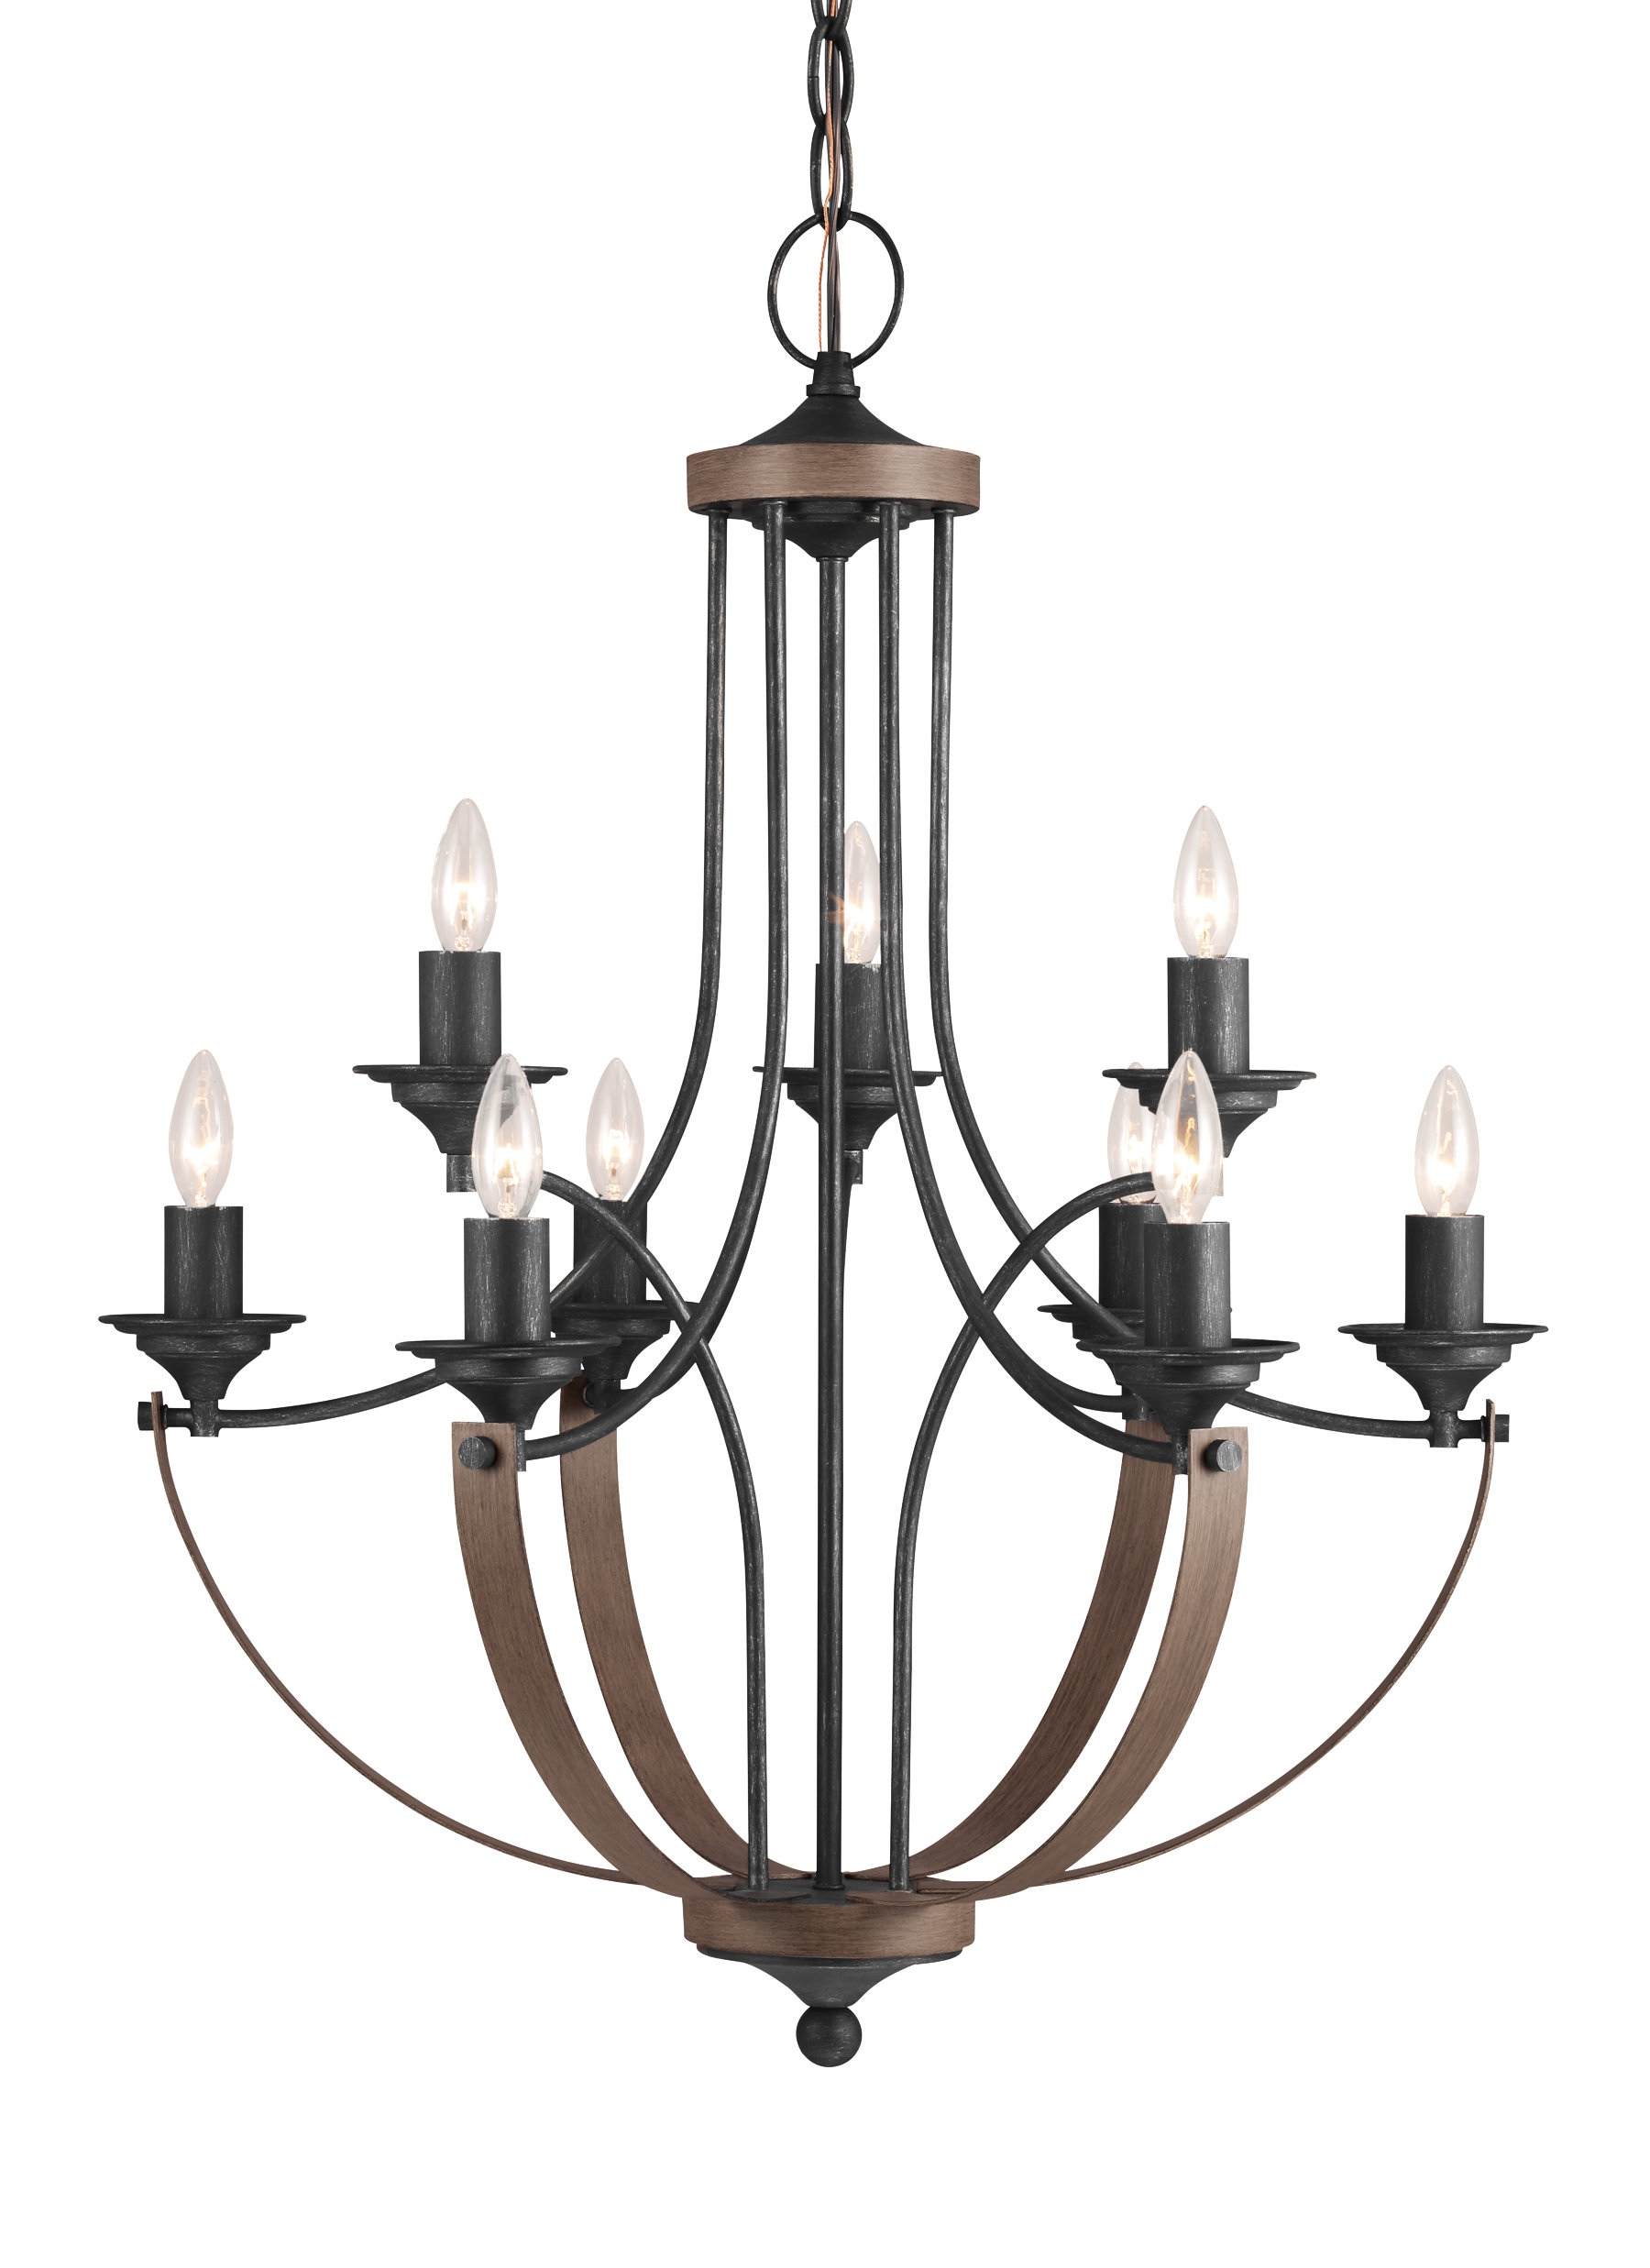 Camilla 9 Light Candle Style Chandelier Throughout Kenedy 9 Light Candle Style Chandeliers (View 6 of 30)